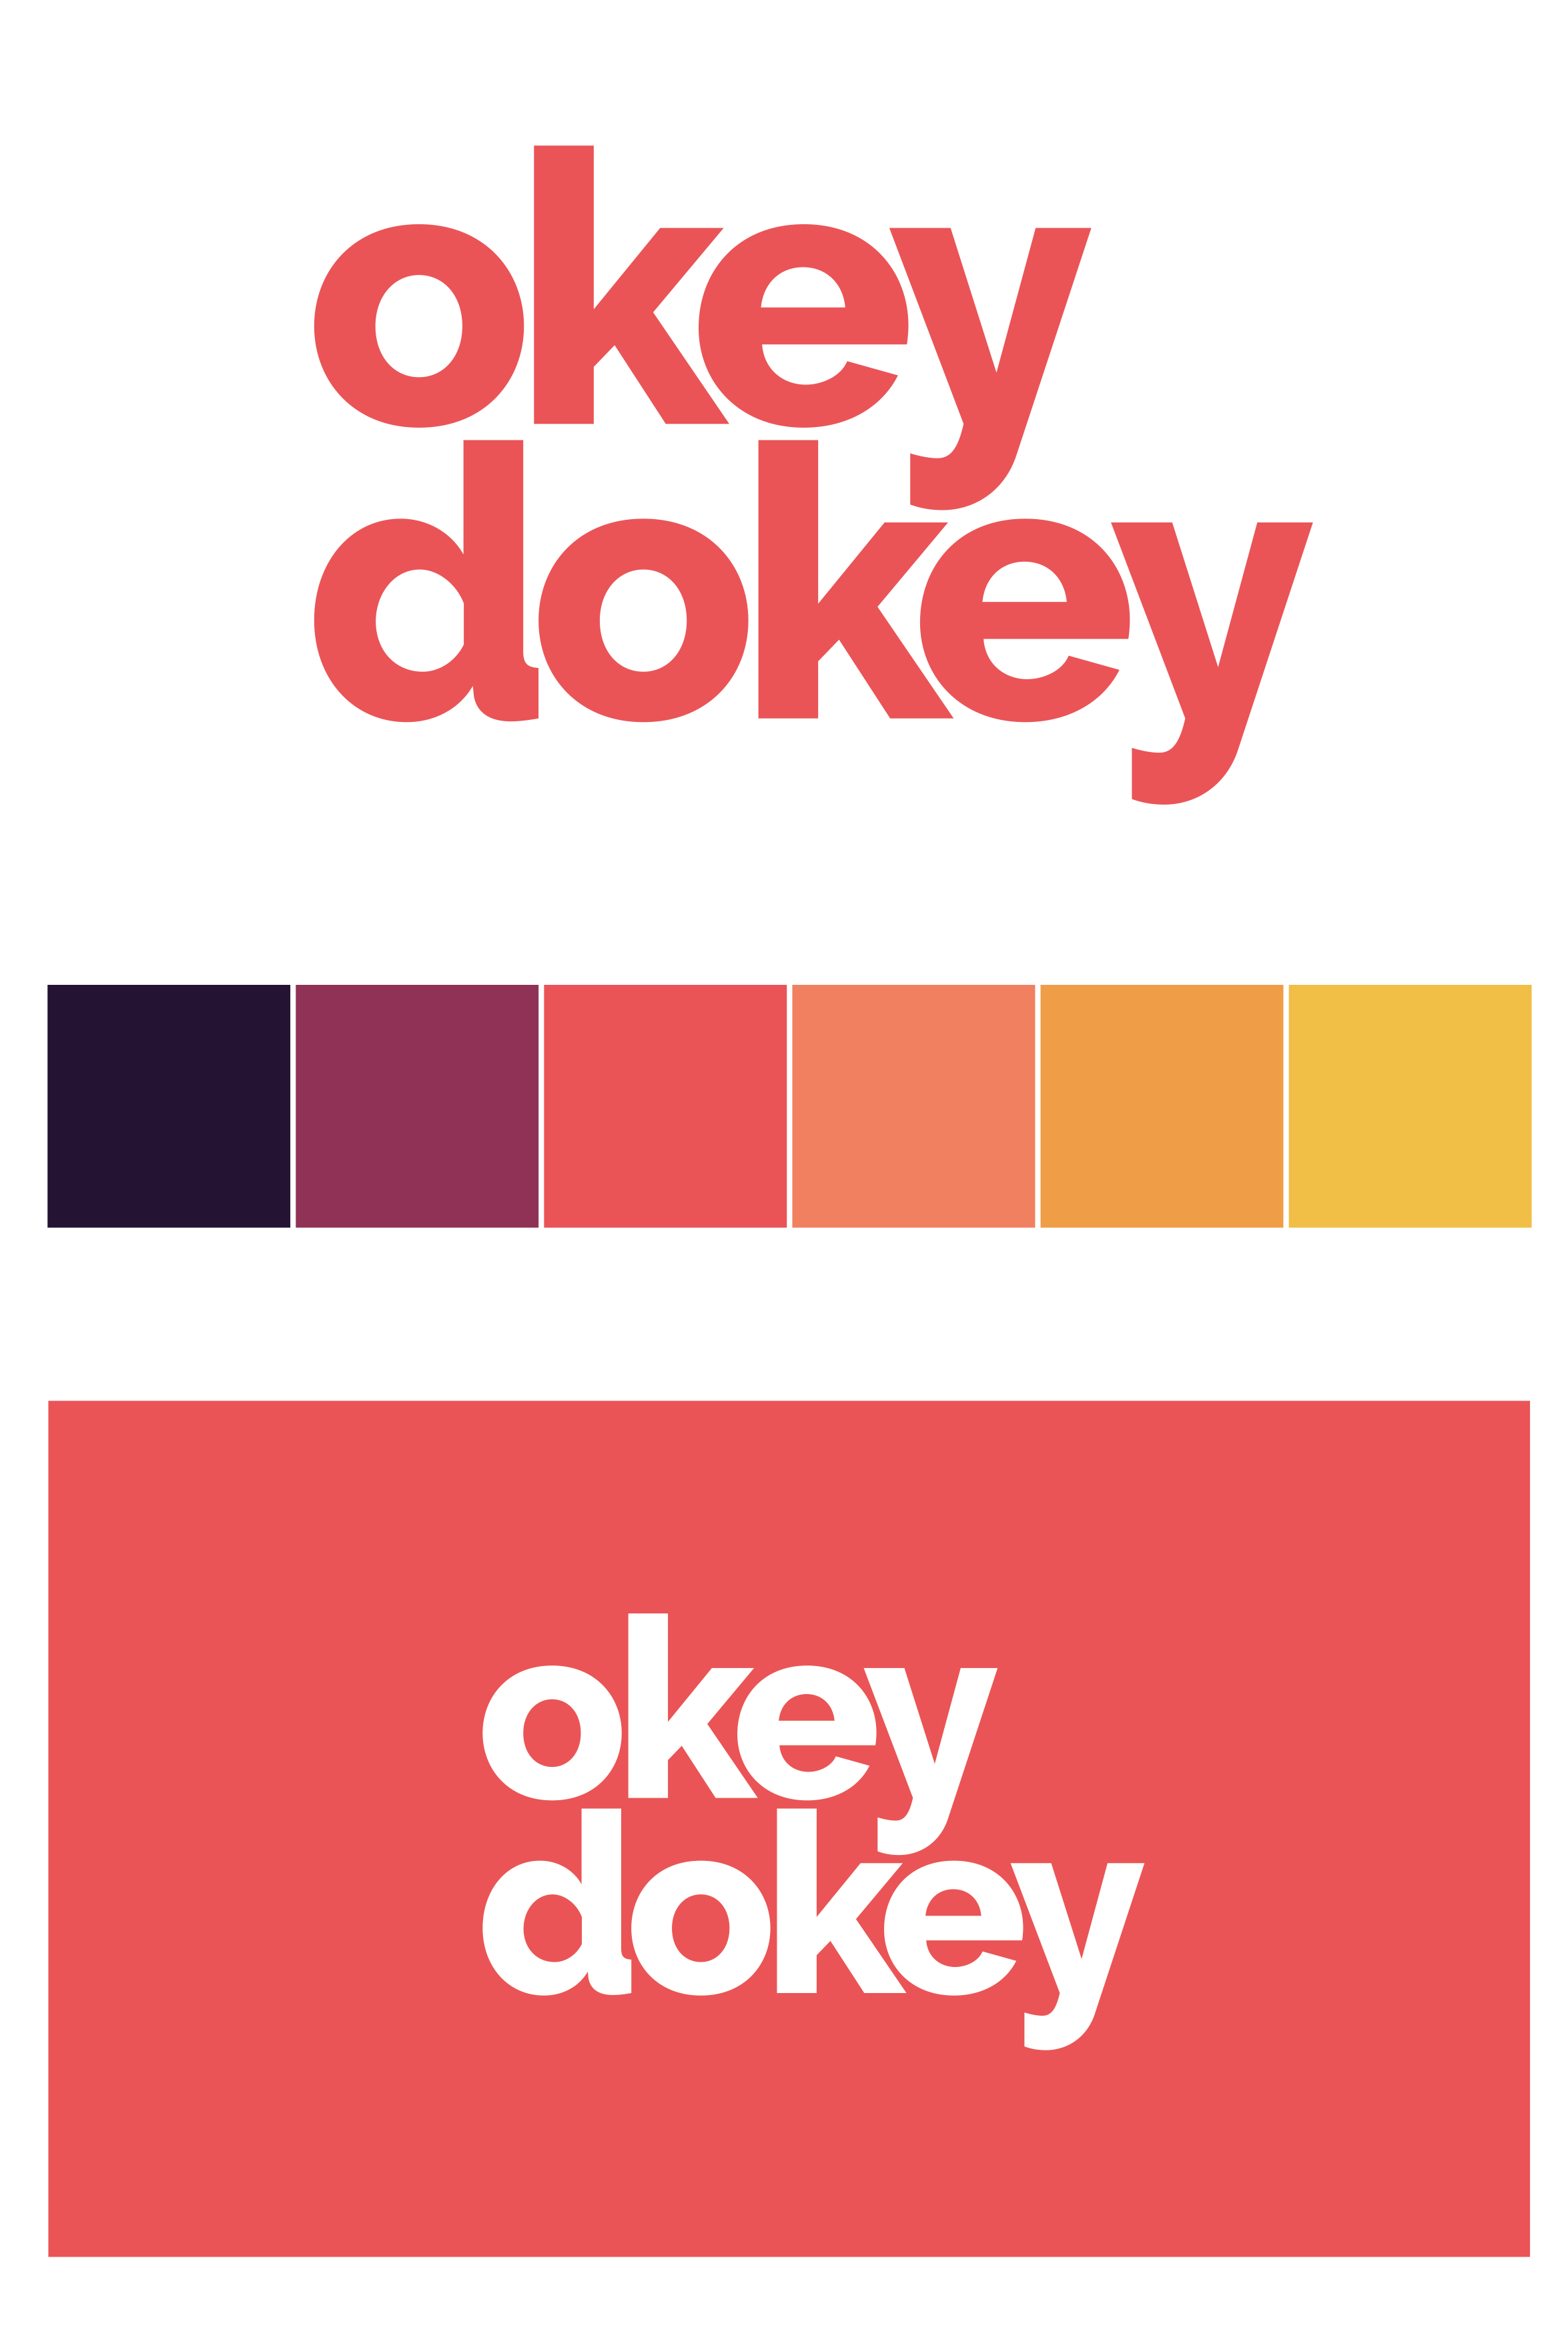 Okey Dokey logo and app graphic design